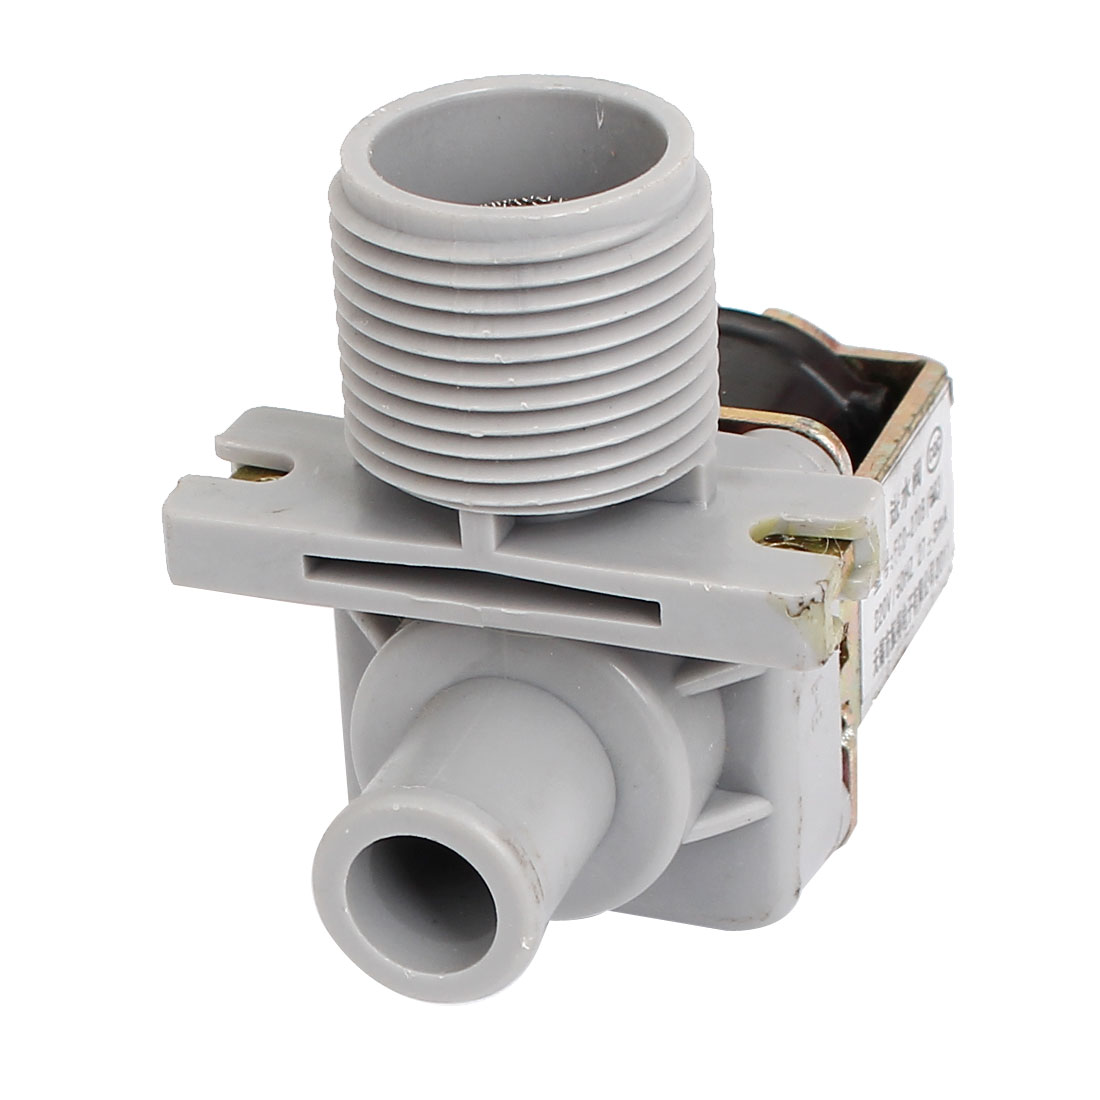 220V 50Hz 3/4BSP Male Thread Water Inlet Solenoid Valve for Washing Machine